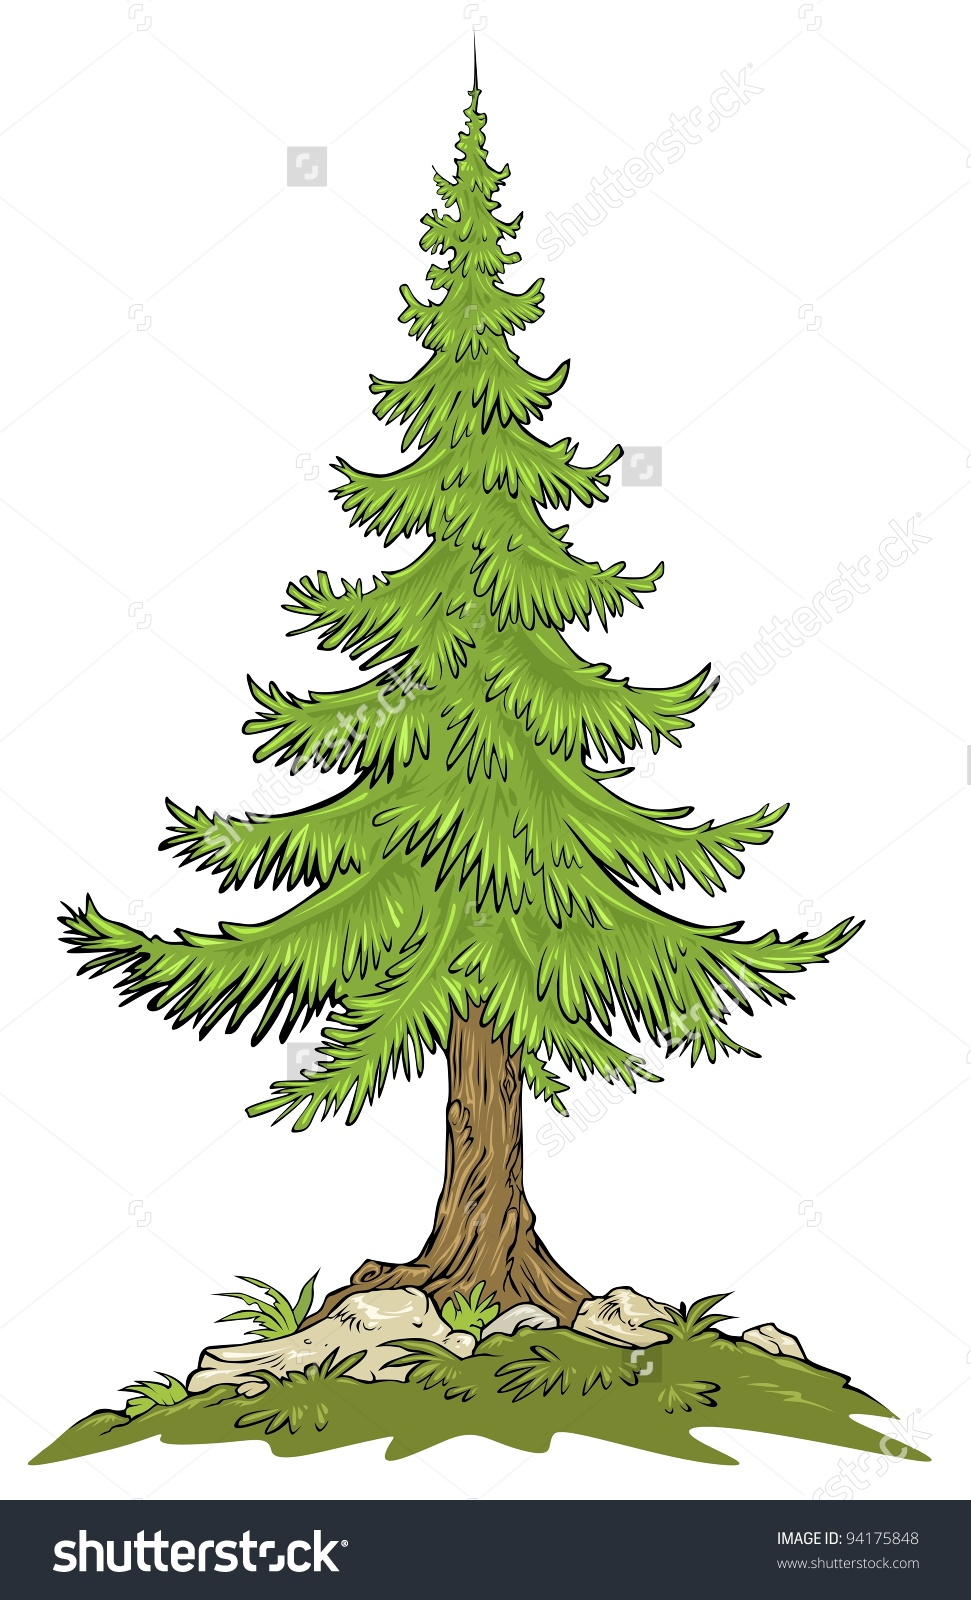 Fir Tree Cartoon Clip Art Stock Vector 94175848.